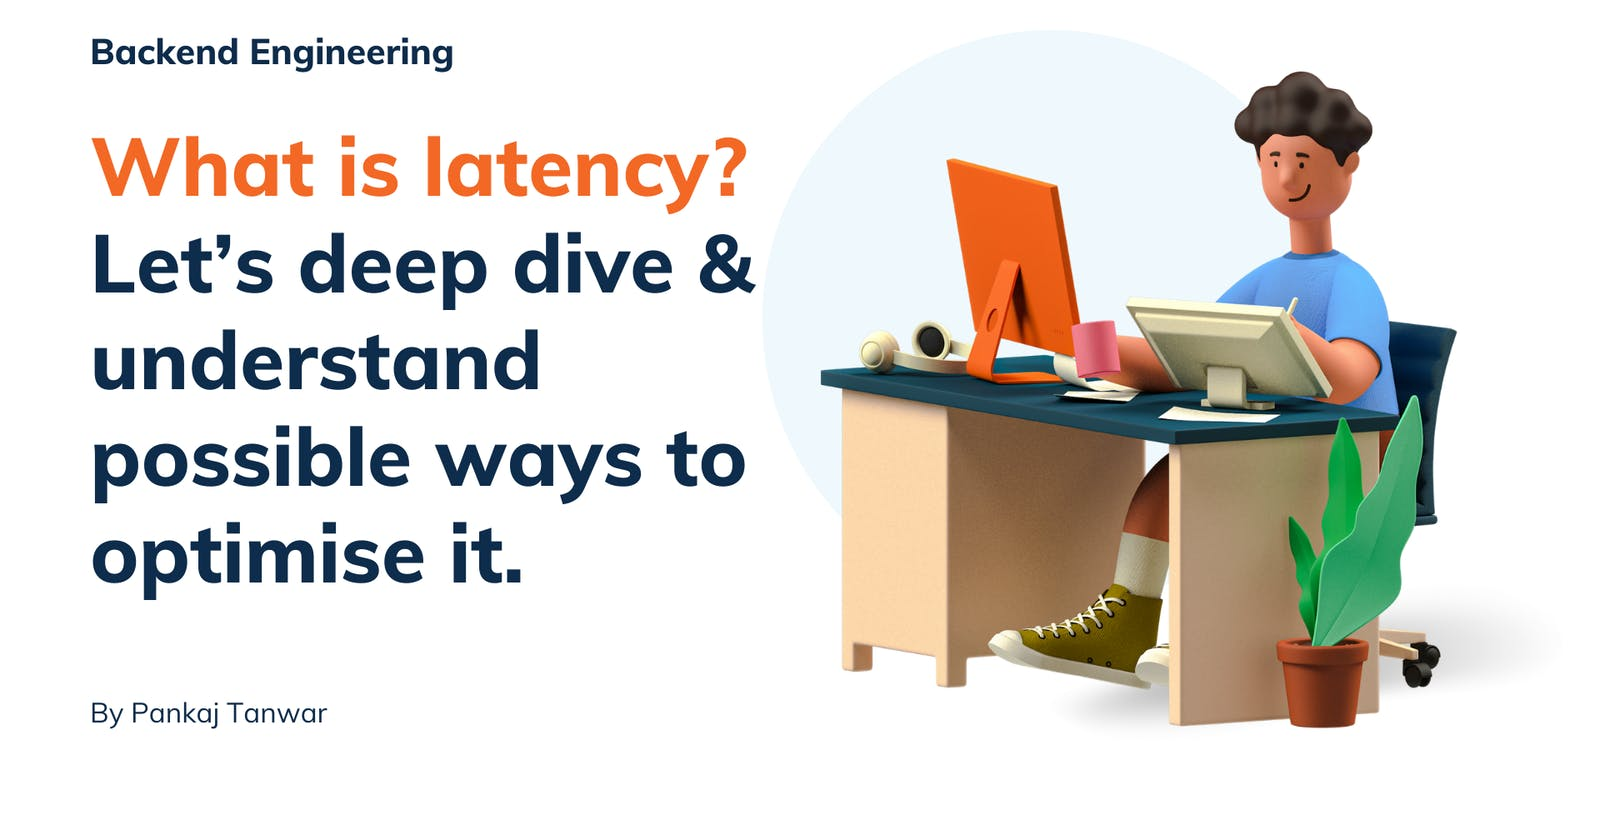 What is latency? Let's deep dive & understand possible ways to optimise it.